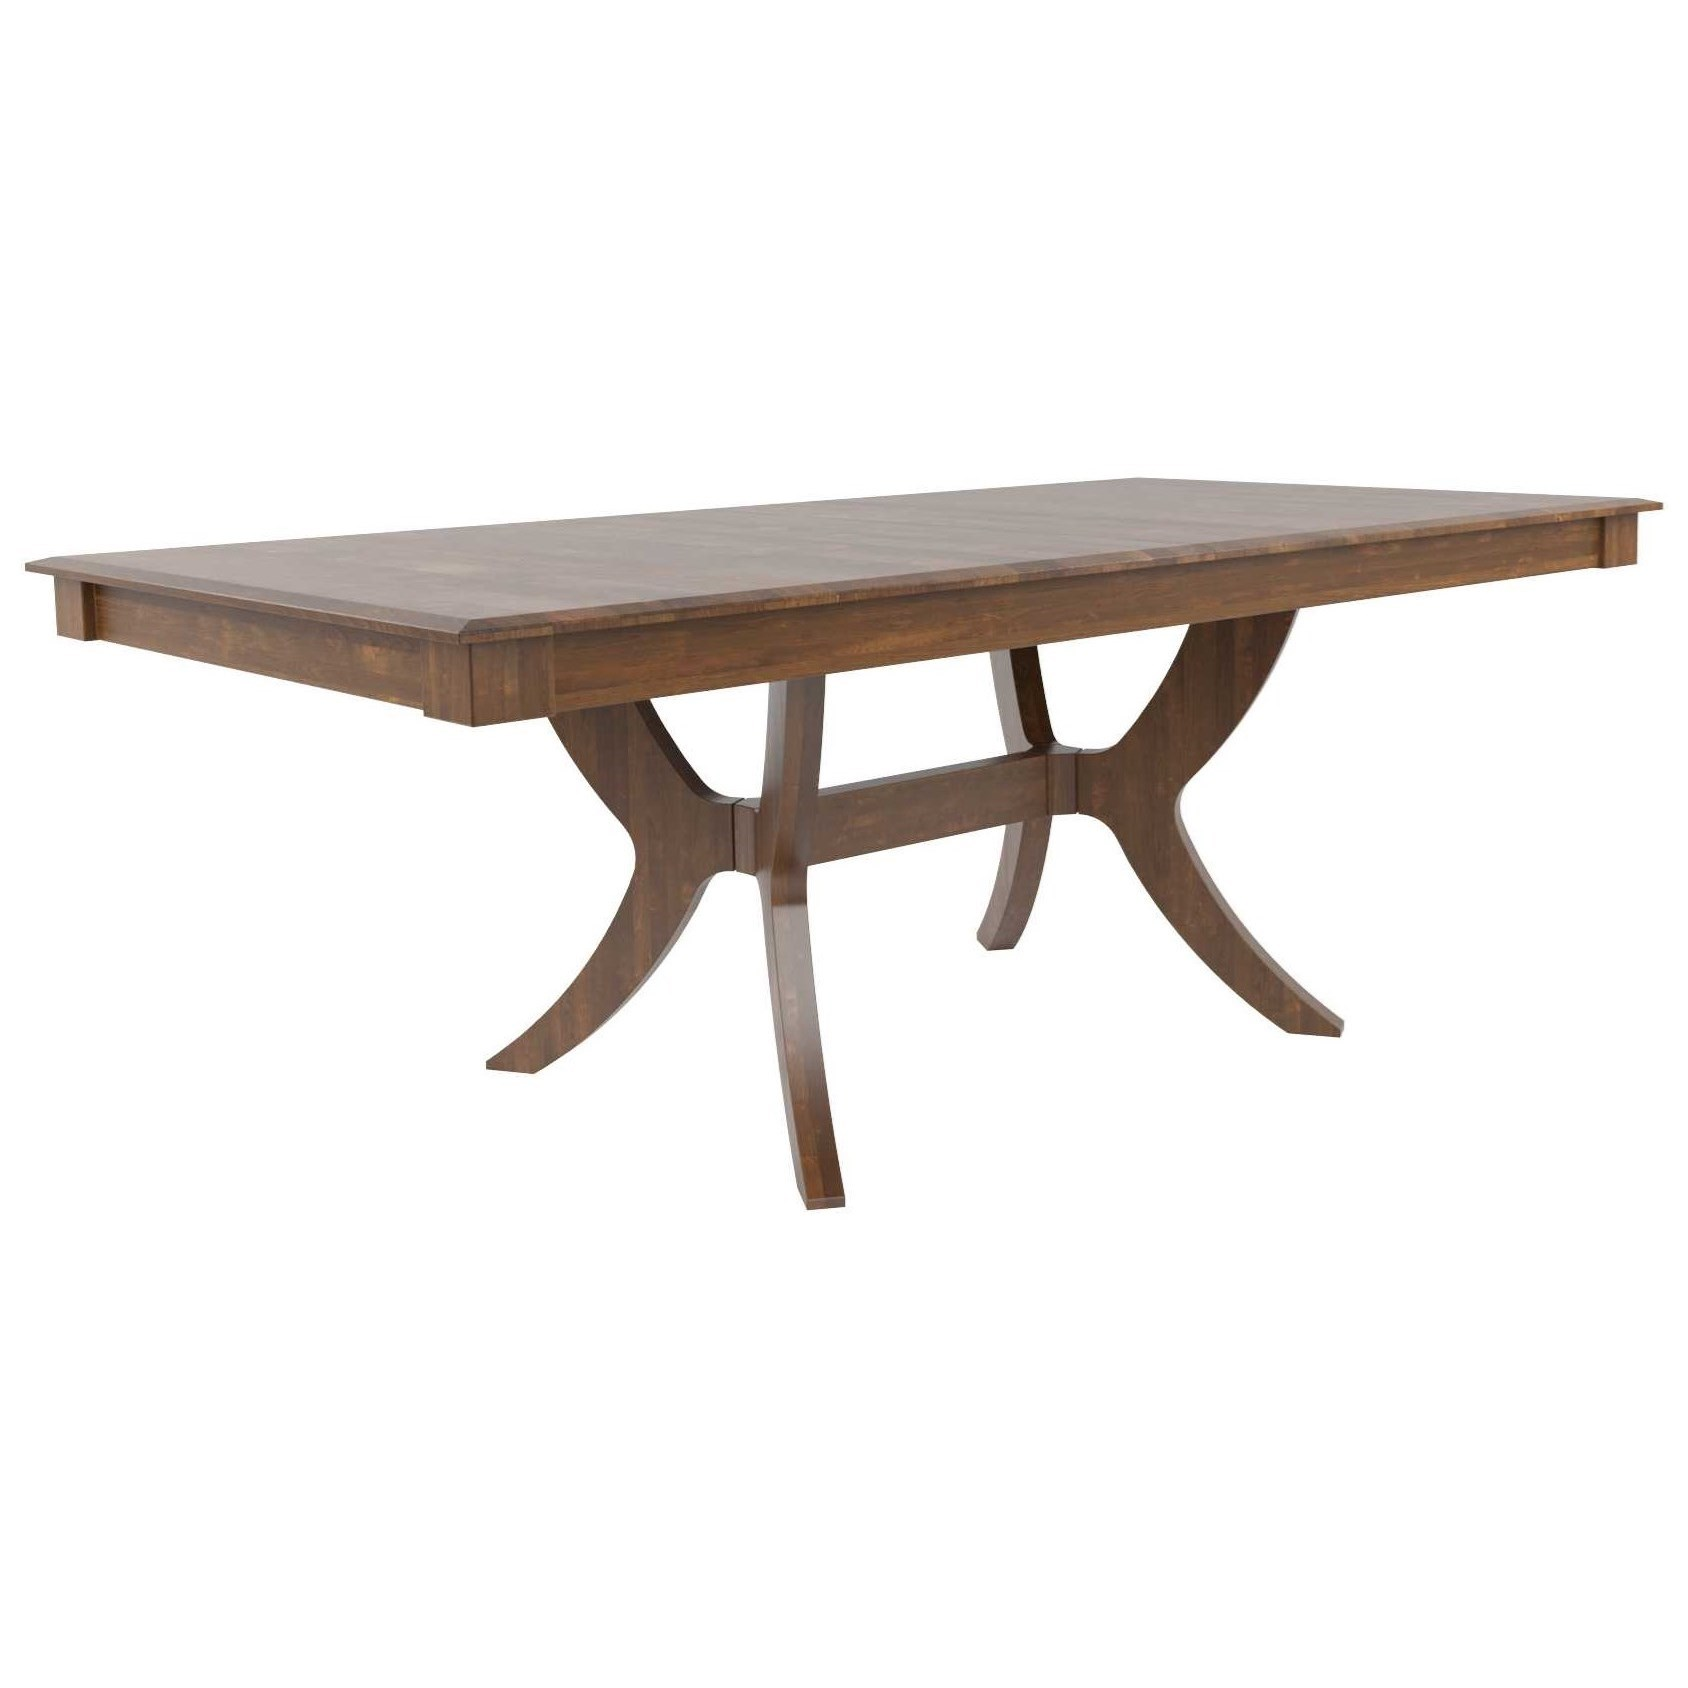 Core - Custom Dining Customizable Rectangular Dining Table by Canadel at Dinette Depot